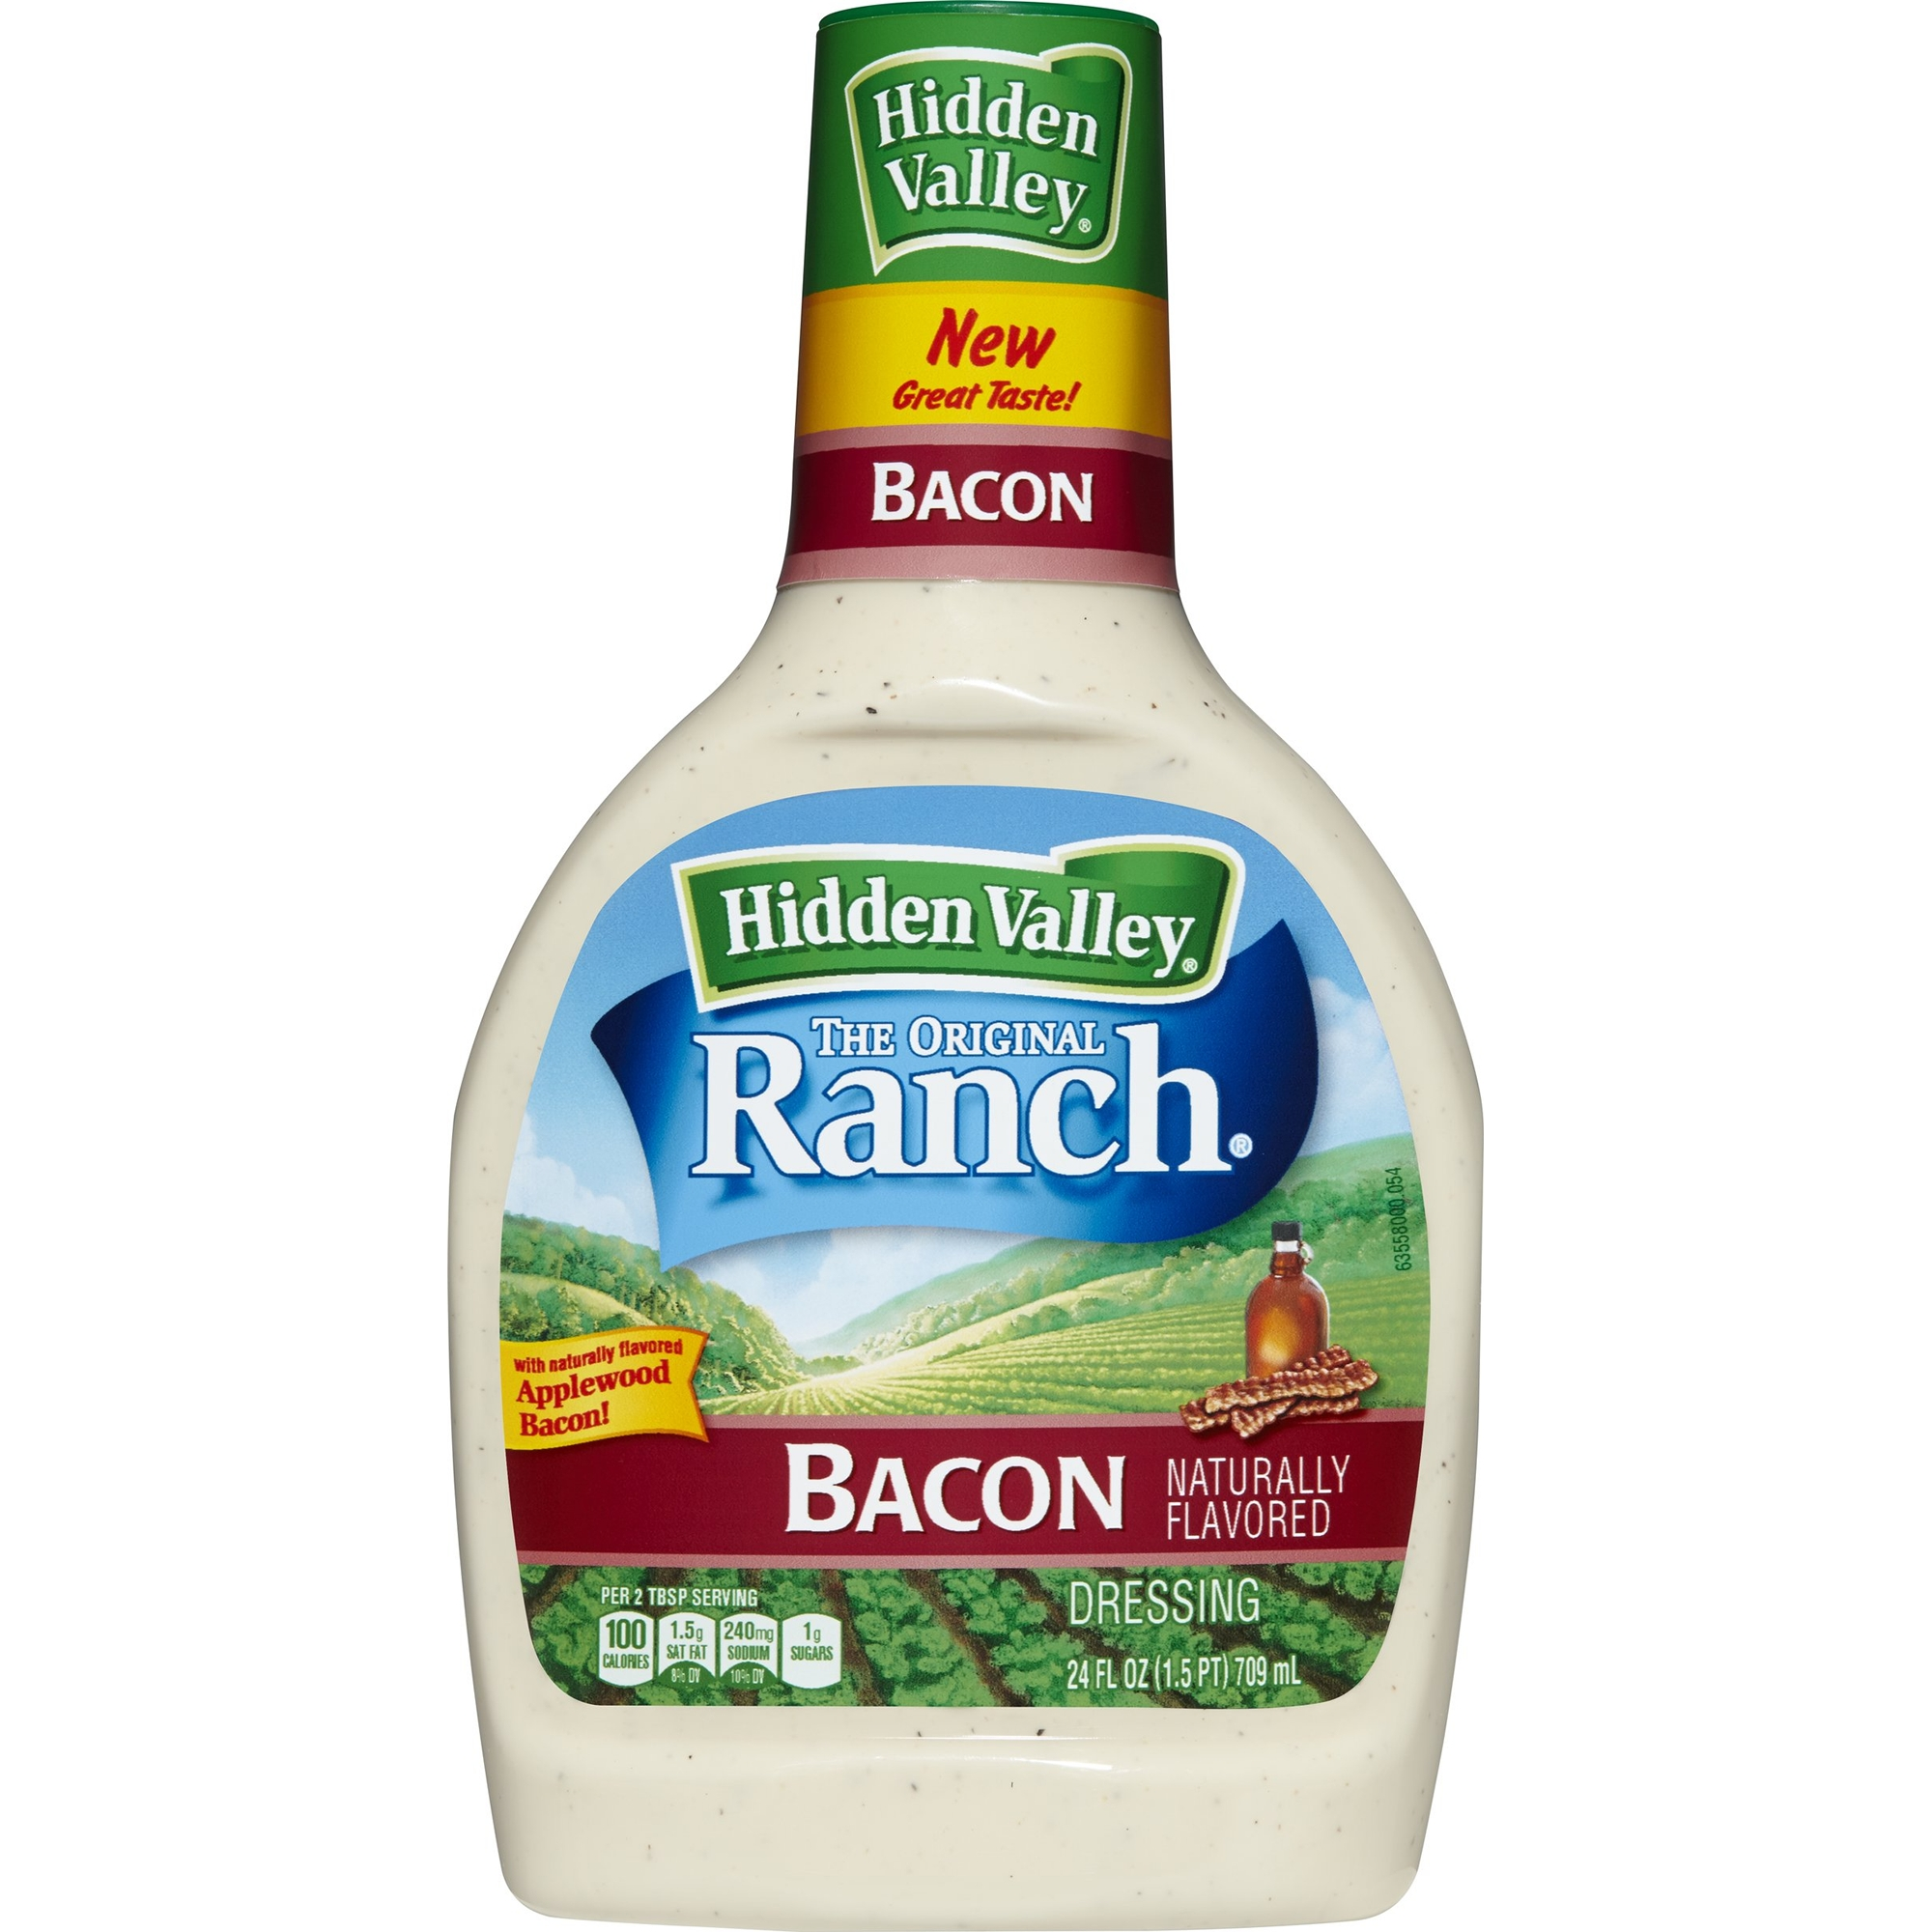 Hidden Valley Original Ranch Dressing, Bacon, 24 Fluid Ounces